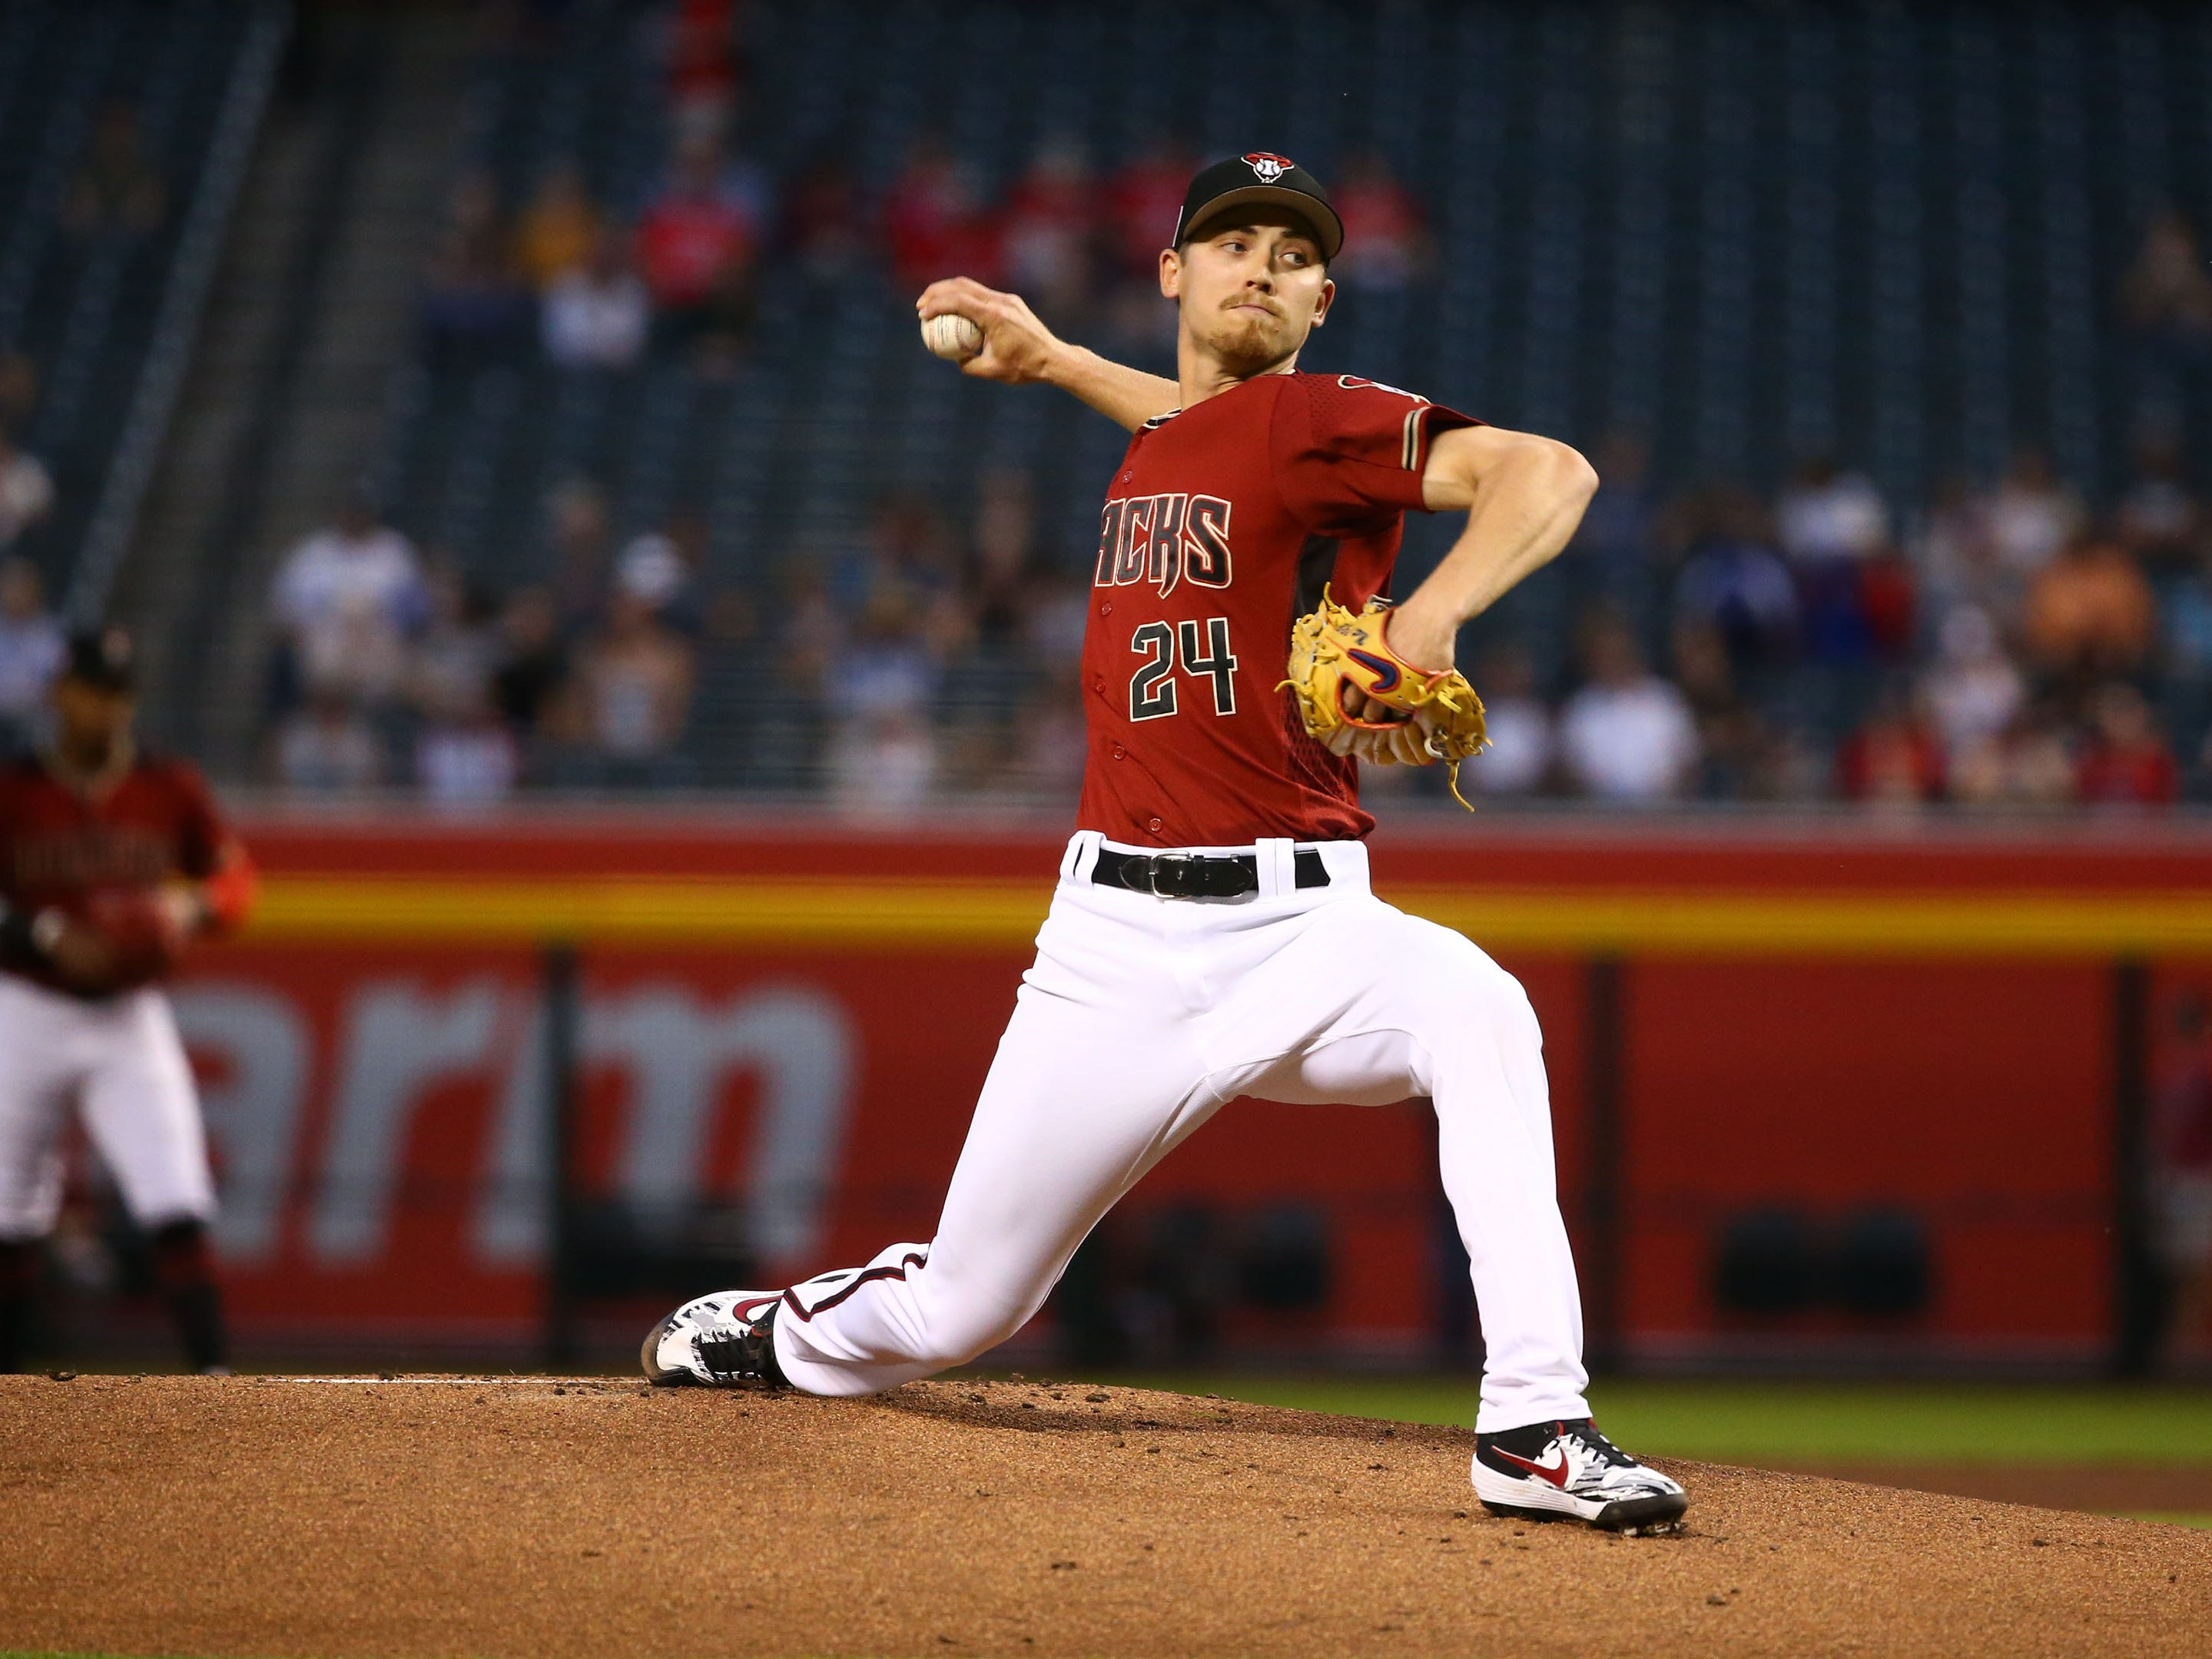 Arizona Diamondbacks pitcher Luke Weaver (24) throws to the Chicago White Sox in the first inning during a spring training game on Mar. 25, 2019 at Chase Field in Phoenix, Ariz.